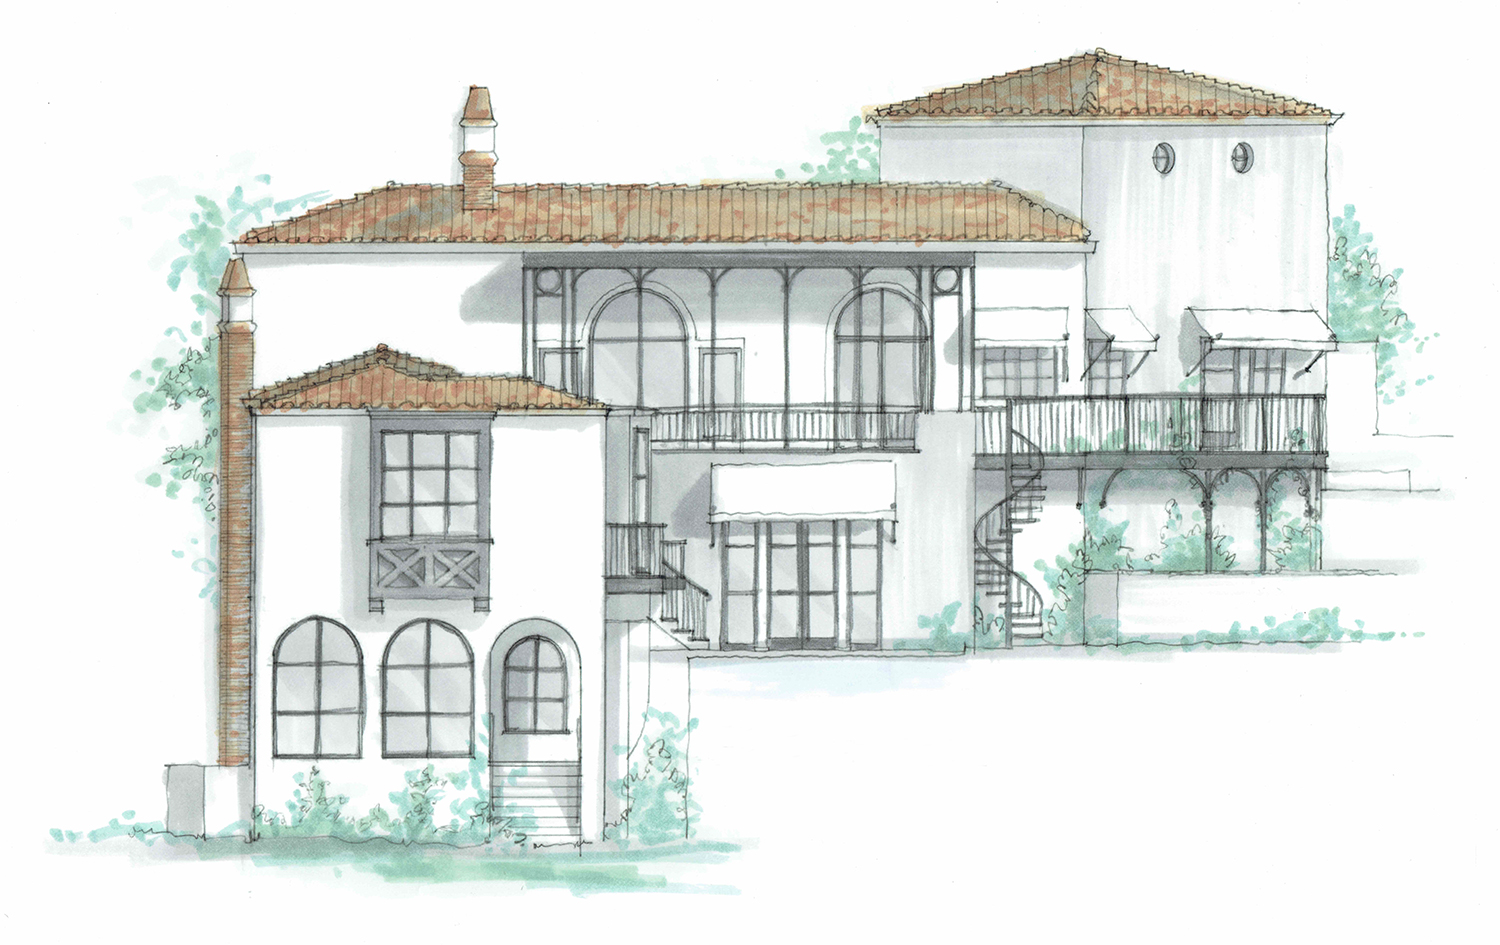 A pen and ink rendering of the rear facade of a Spanish Colonial Revival style residence in Los Angeles, designed by senior project manager  Ari Engelman  and rendered by interior architecture designer  Patrick Tennant , 2018.